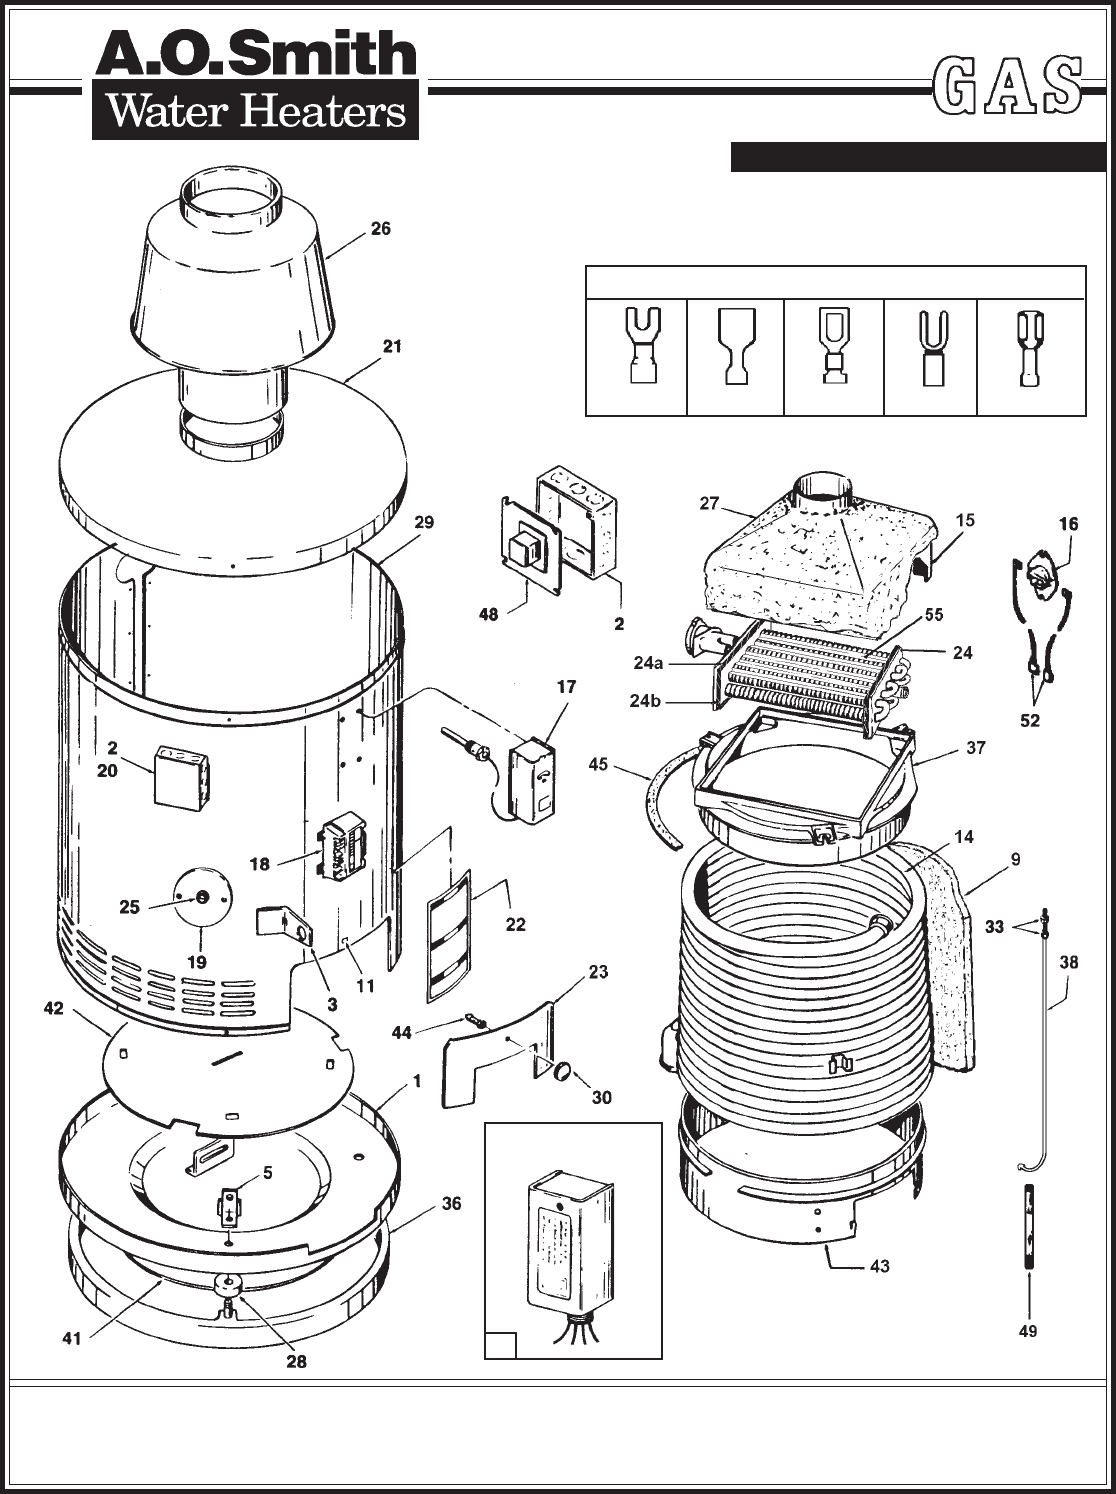 A O Smith Water Heater 105 Series User Guide